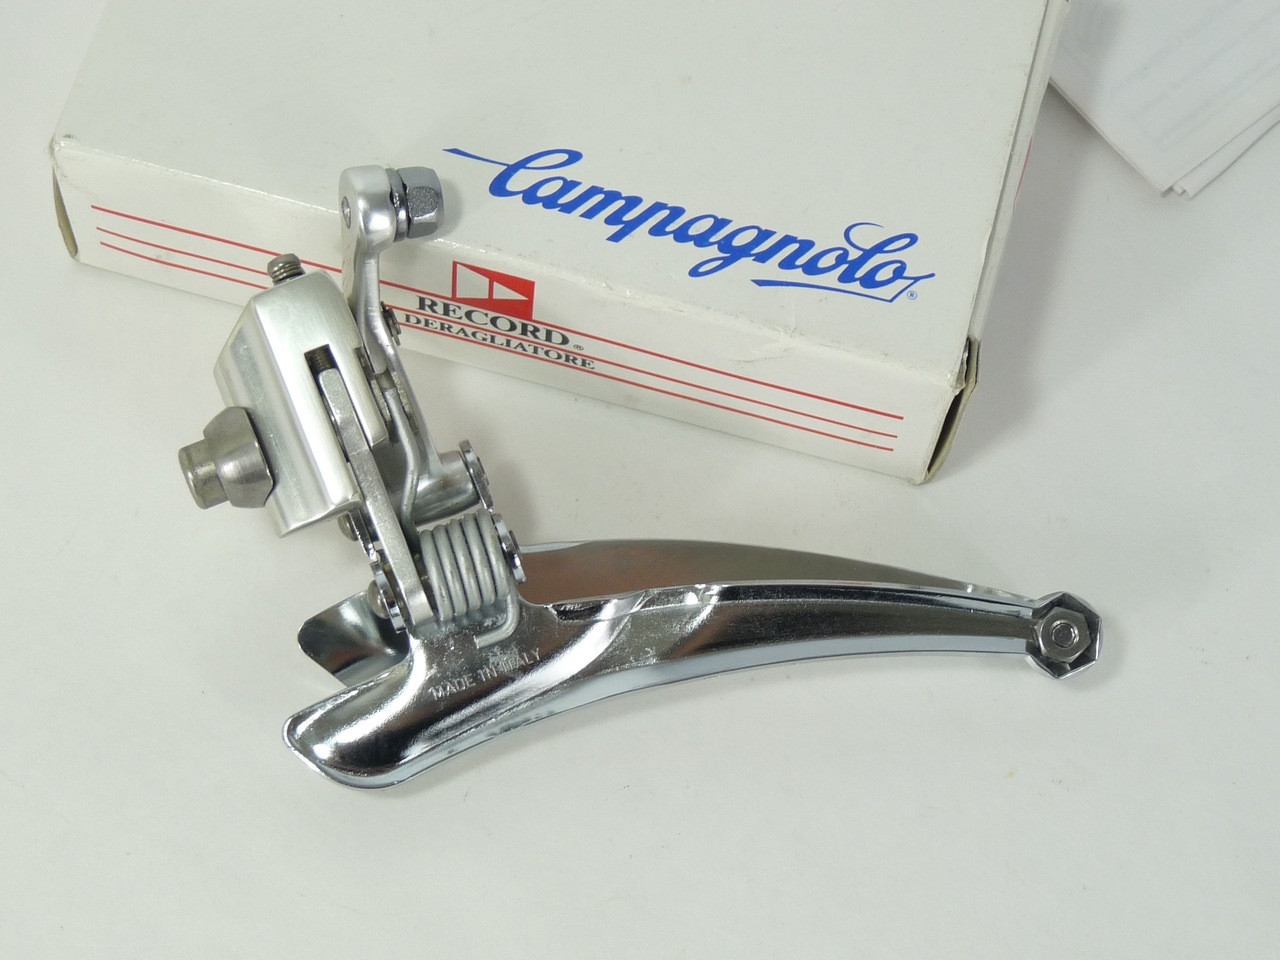 VINTAGE CAMPAGNOLO RECORD TITANIUM SCREW FOR BRAZE-ON FRONT DERAILLEUR NOS